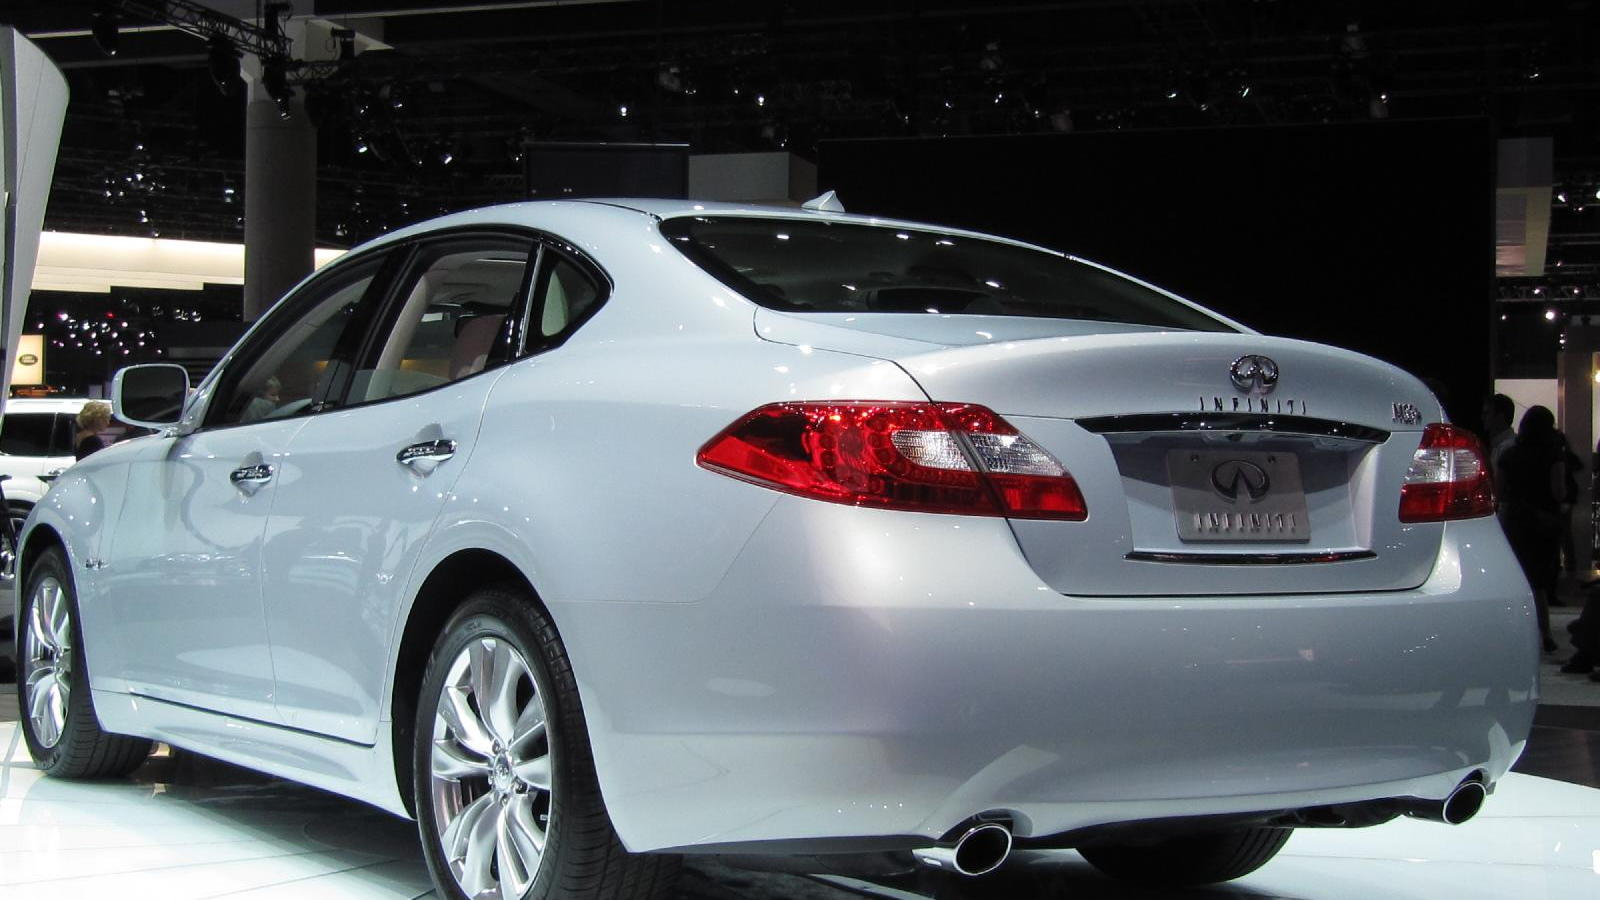 2012 Infiniti M Hybrid, at the 2010 Los Angeles Auto Show